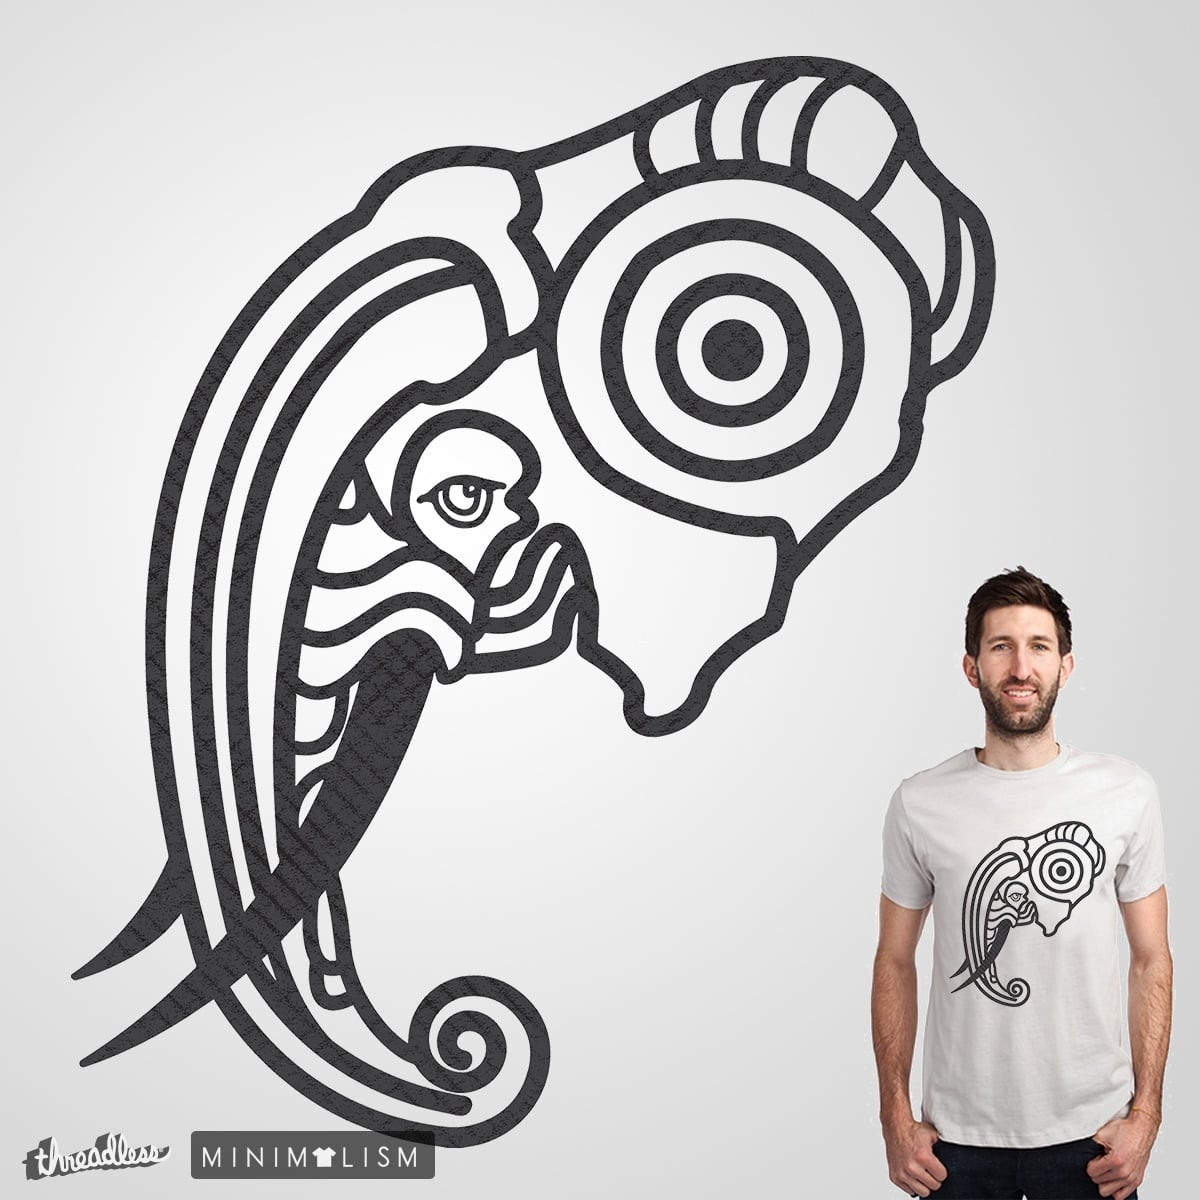 MINIMAL ELEPHANT by Loremnzo on Threadless